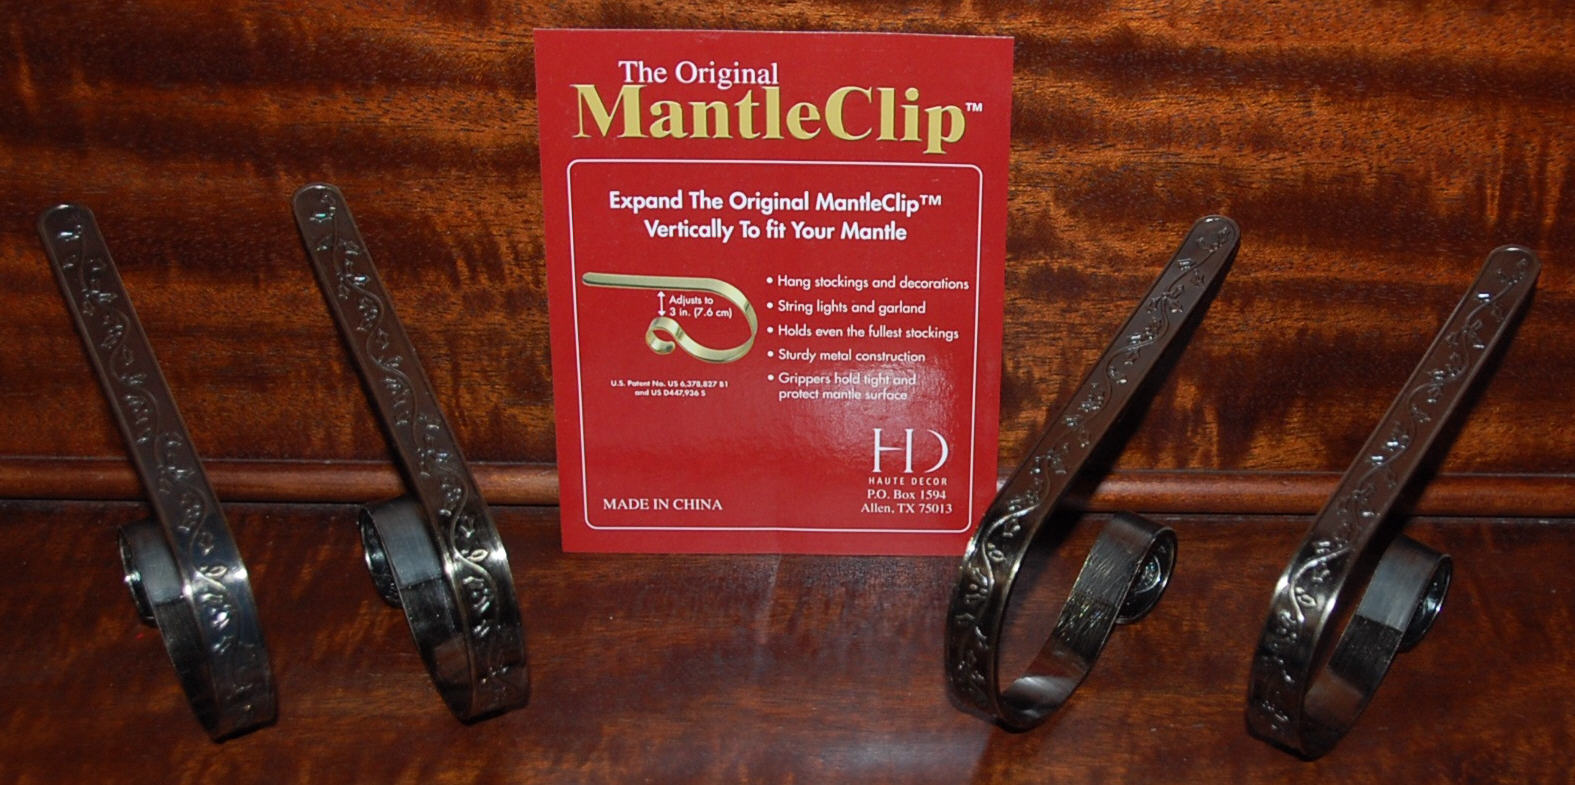 To protect the surface, there are clear -To protect the surface, there are clear silicone protector strips on the insides of the clips. These Mantle Clip Stocking Holders - Antique Brass Holly sell ...-5